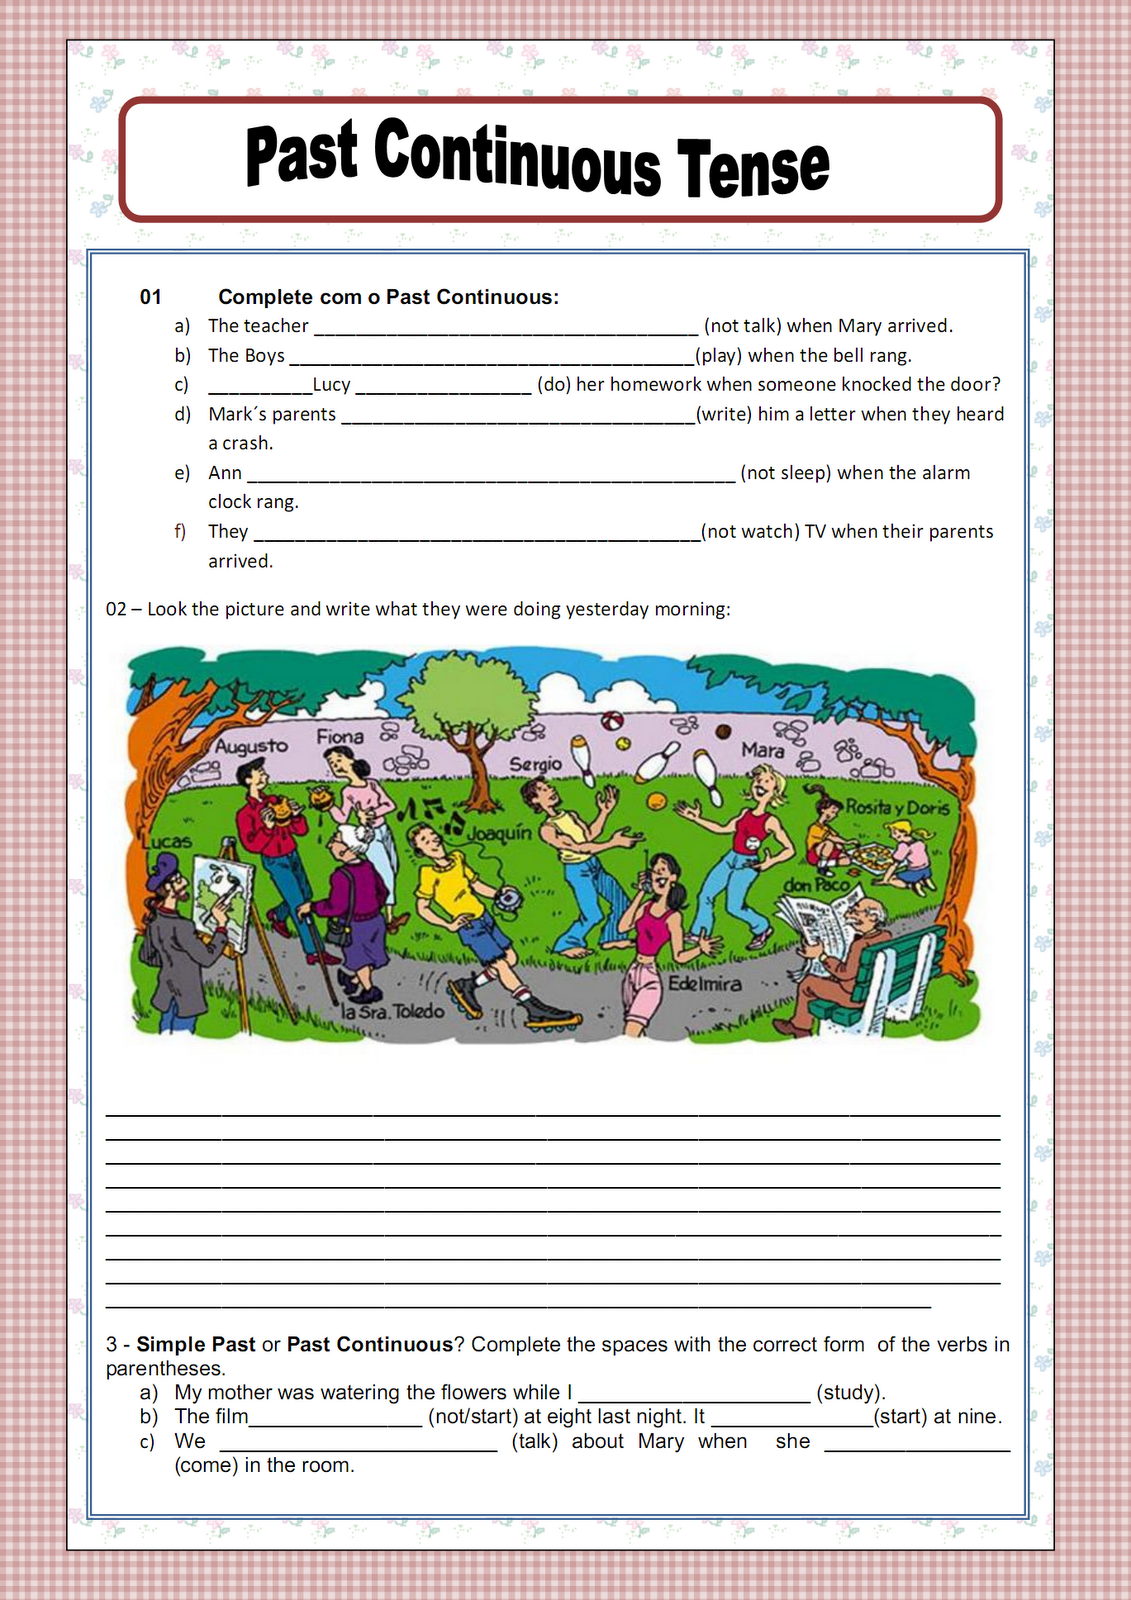 Past Continuous Tense Worksheets